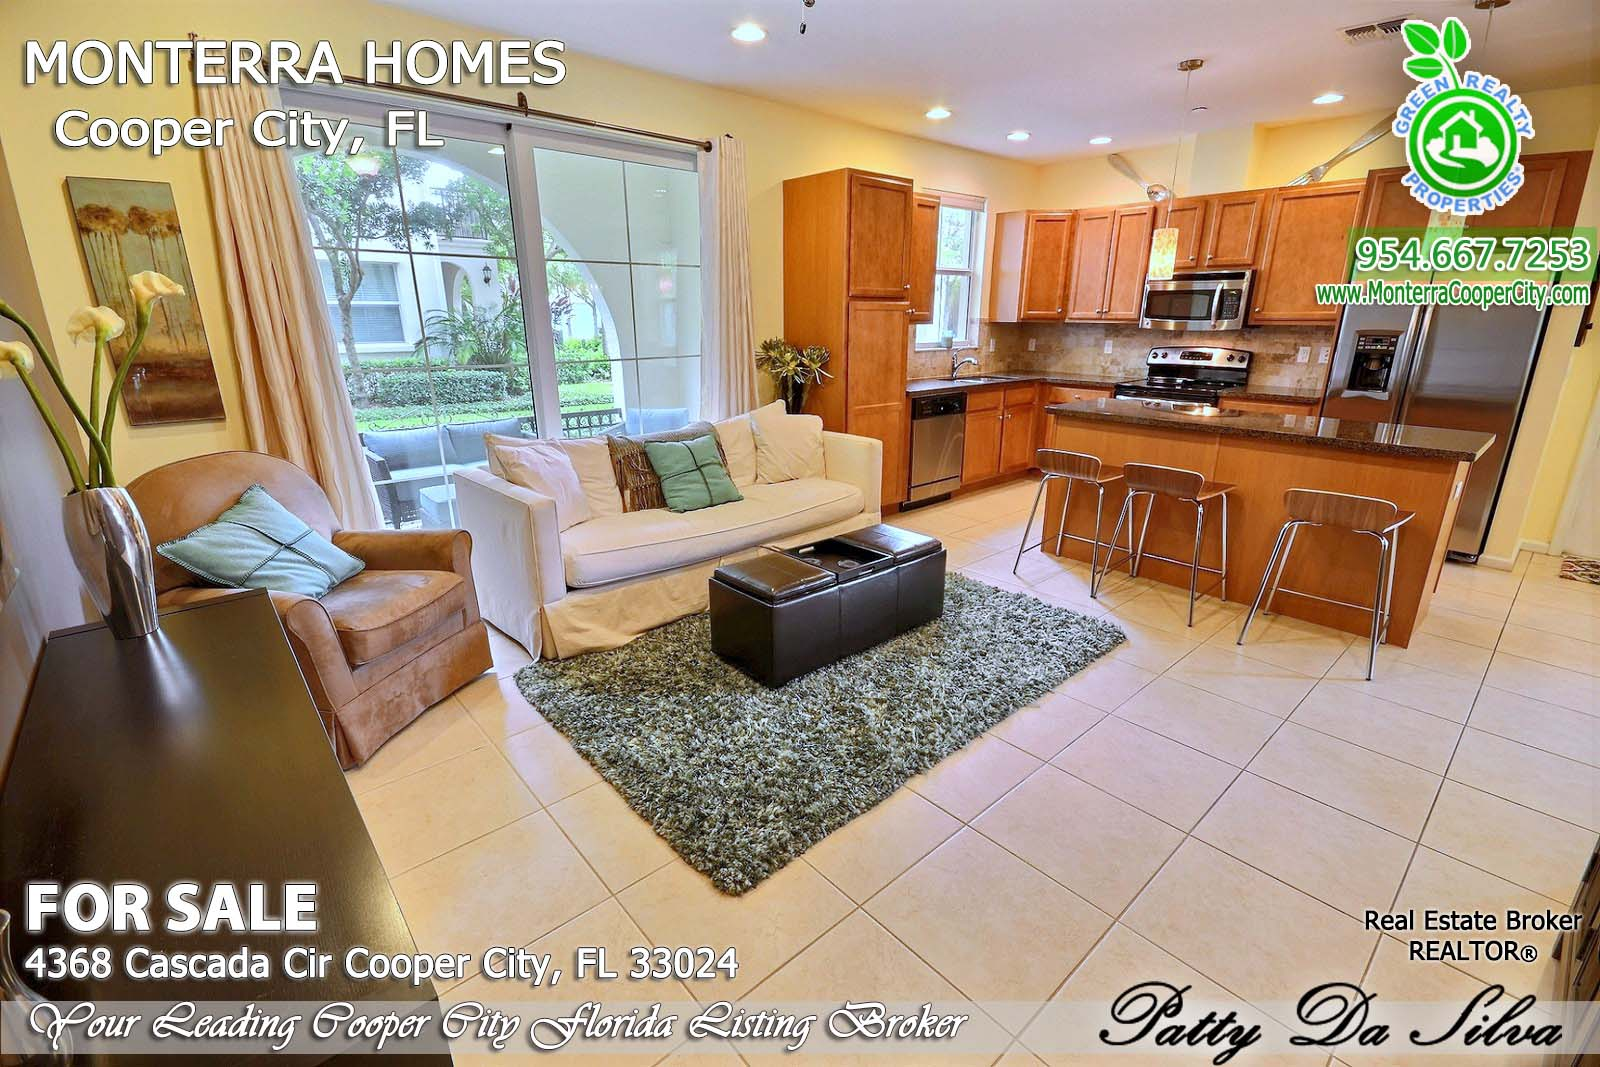 4368 Cascada Cir, Cooper City FL (24)